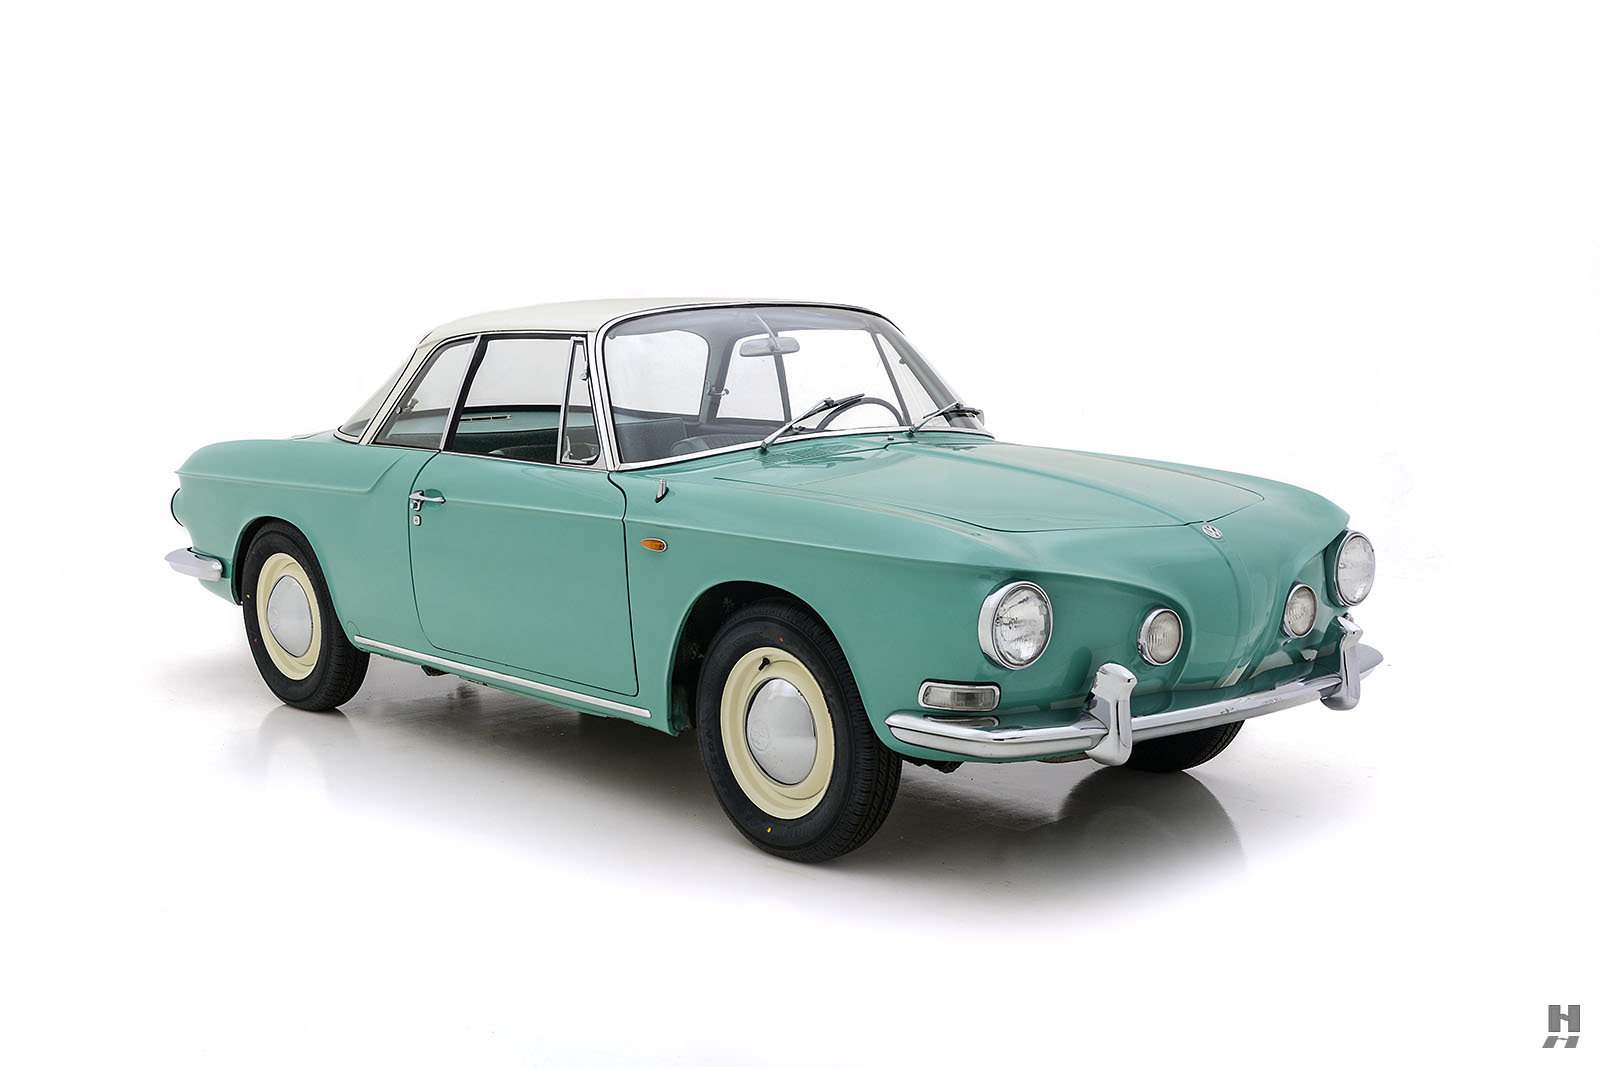 1963 Volkswagen Type 34 Karmann Ghia Coupe For Sale (picture 2 of 6)